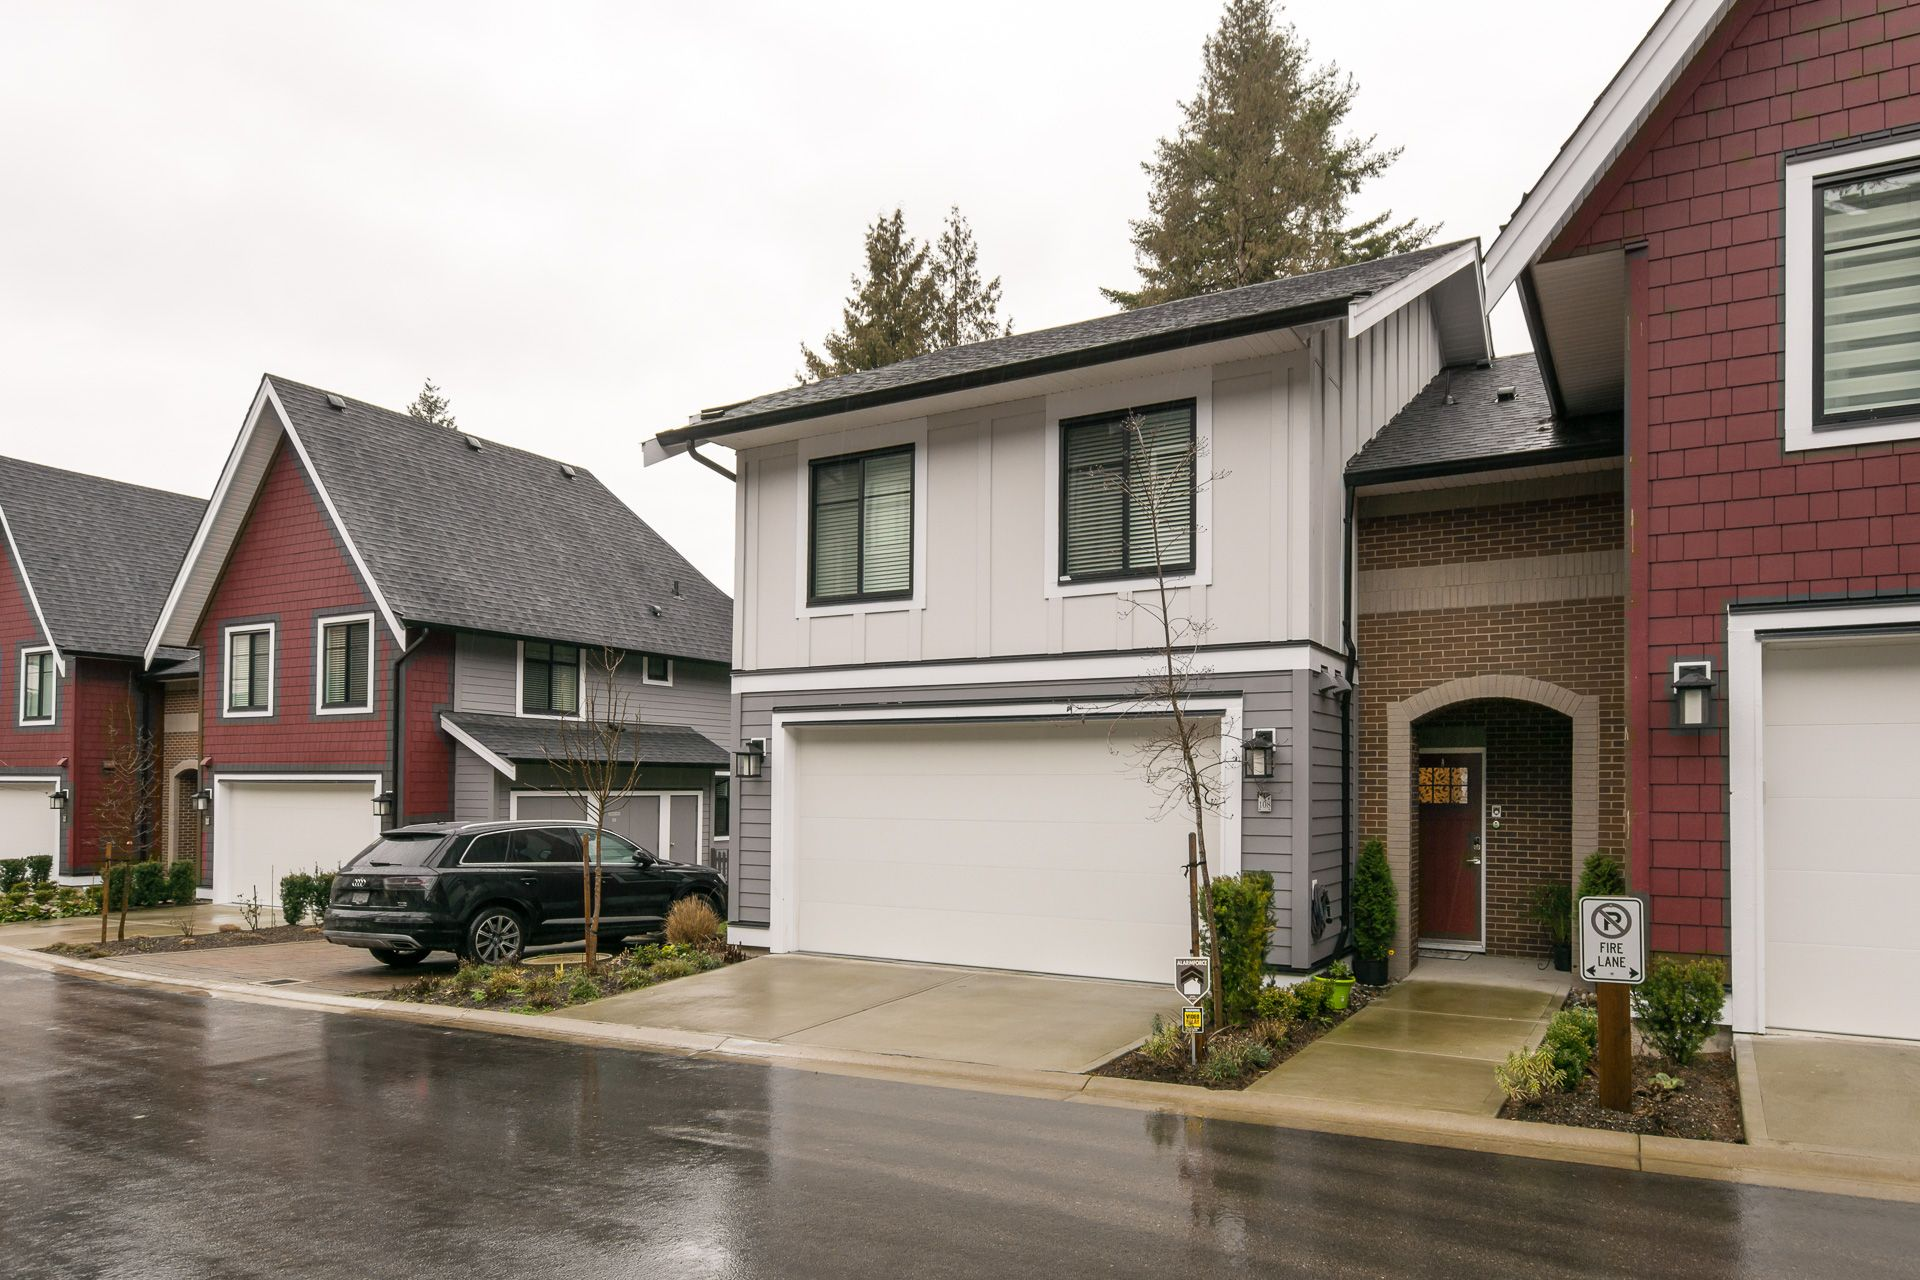 """Main Photo: 108 2853 HELC Place in Surrey: Grandview Surrey Townhouse for sale in """"HYDE PARK"""" (South Surrey White Rock)  : MLS®# R2234244"""